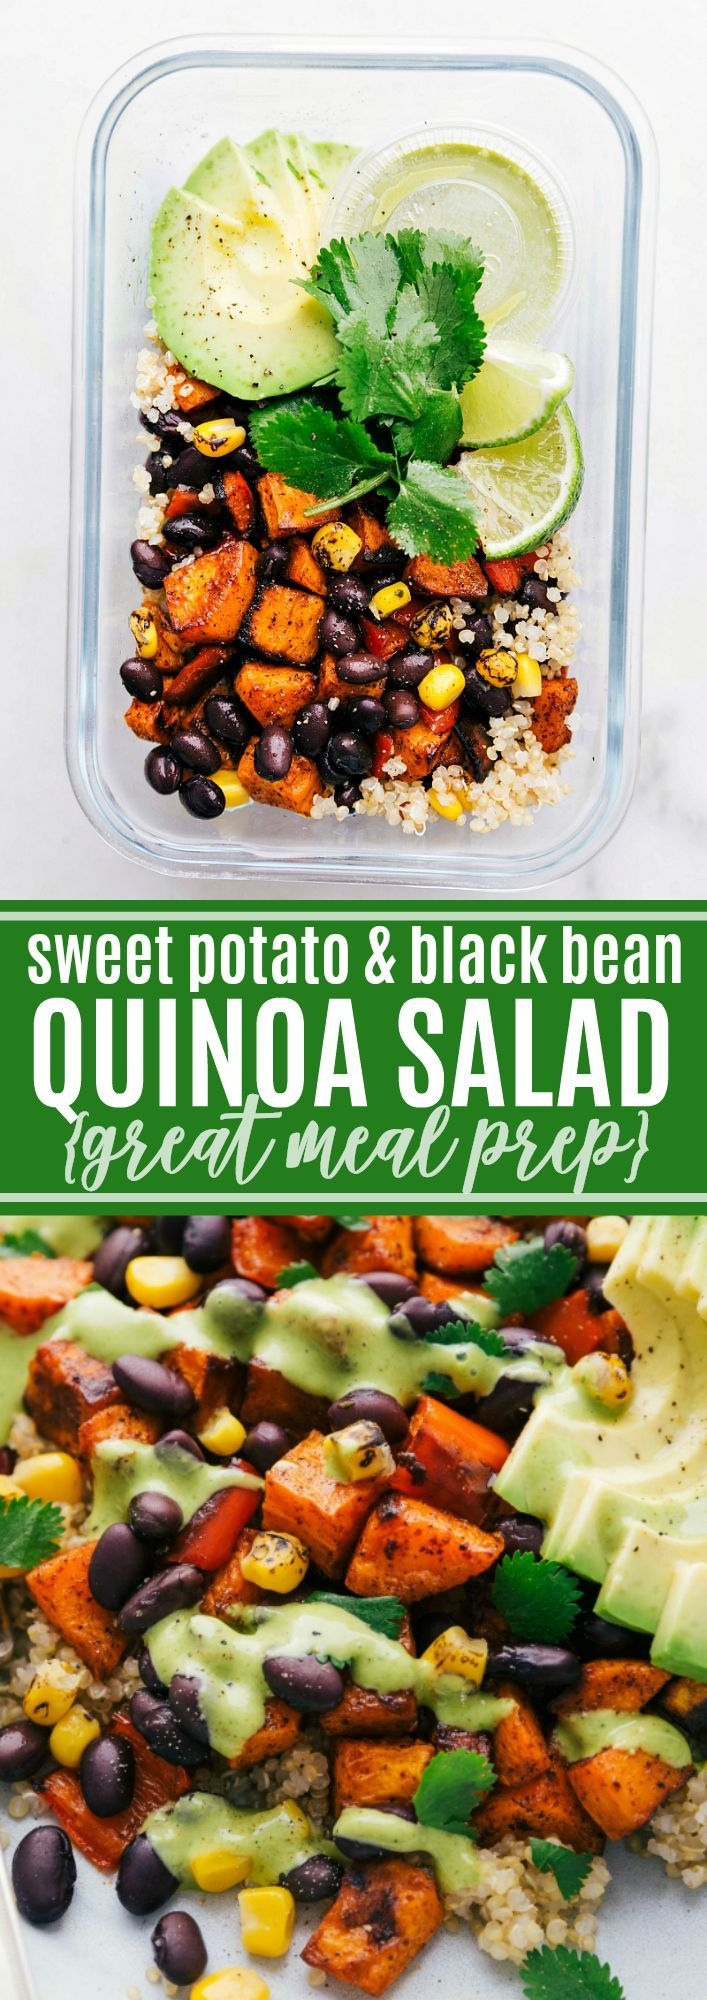 A Quinoa Black Bean Salad With Roasted Sweet Potatoes Black Beans Corn Red Bell Pepper And Sweet Potato Black Beans Roasted Sweet Potatoes Black Bean Salad